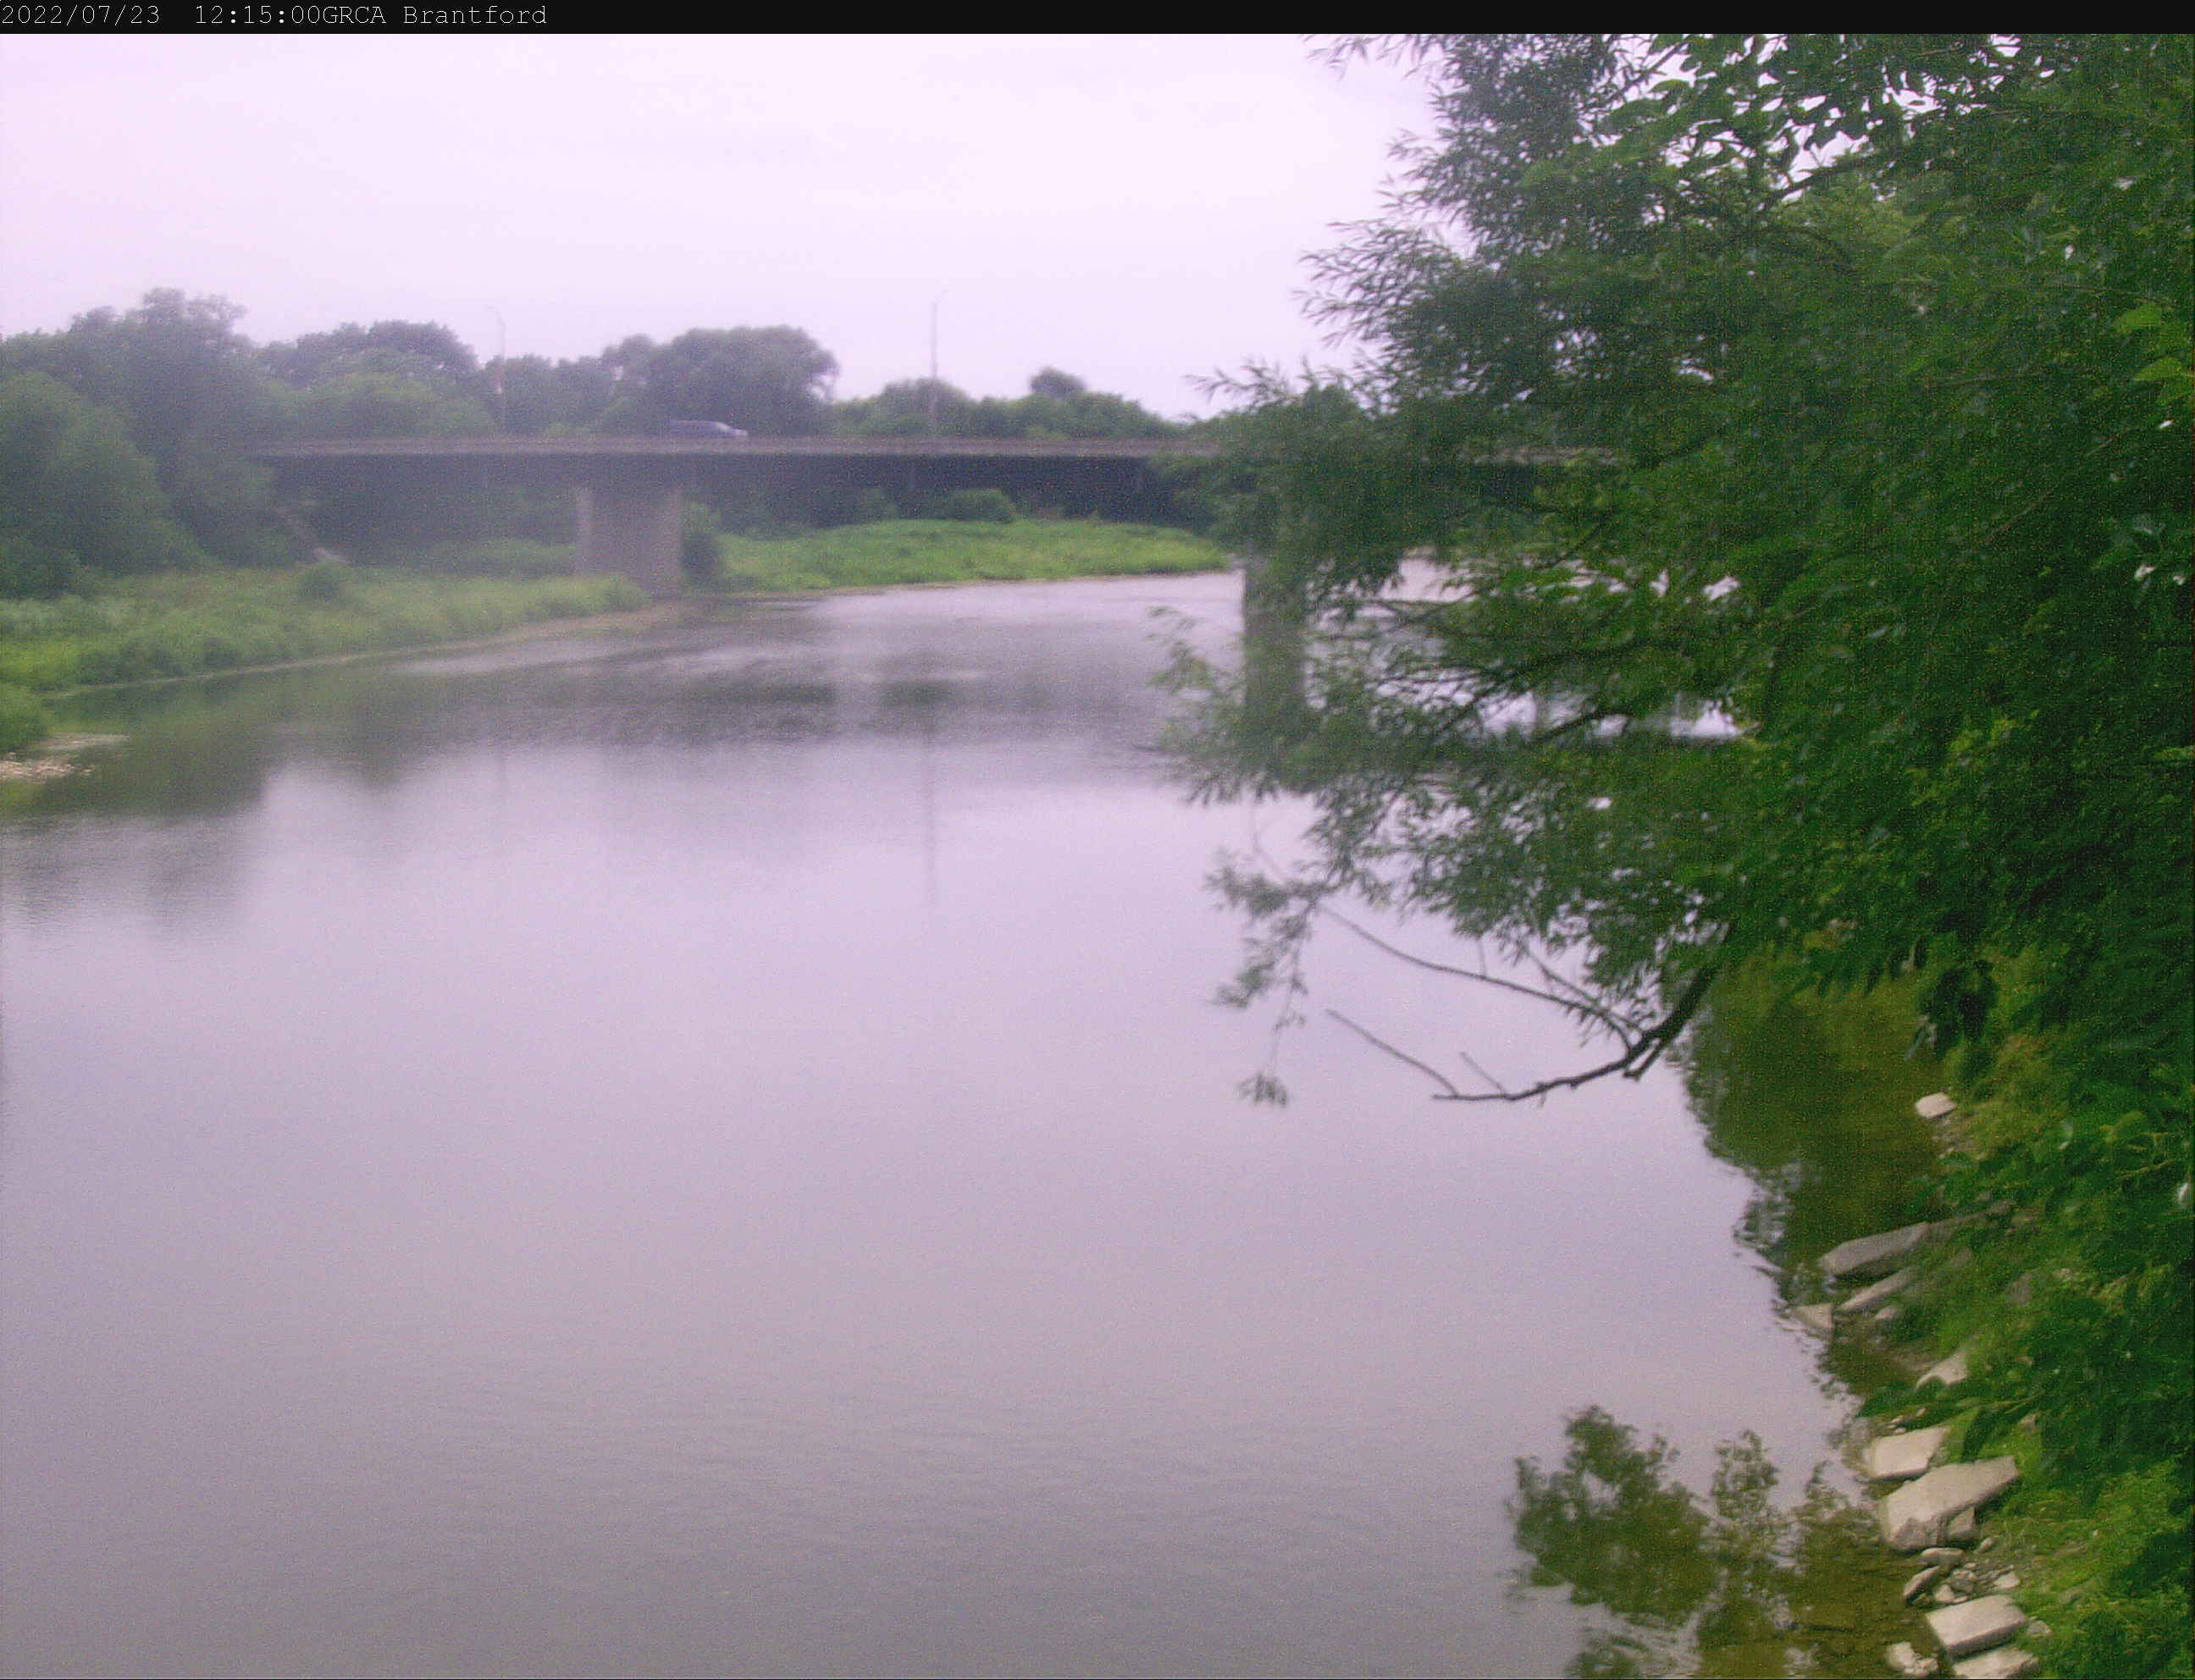 Brantford river cam still photo